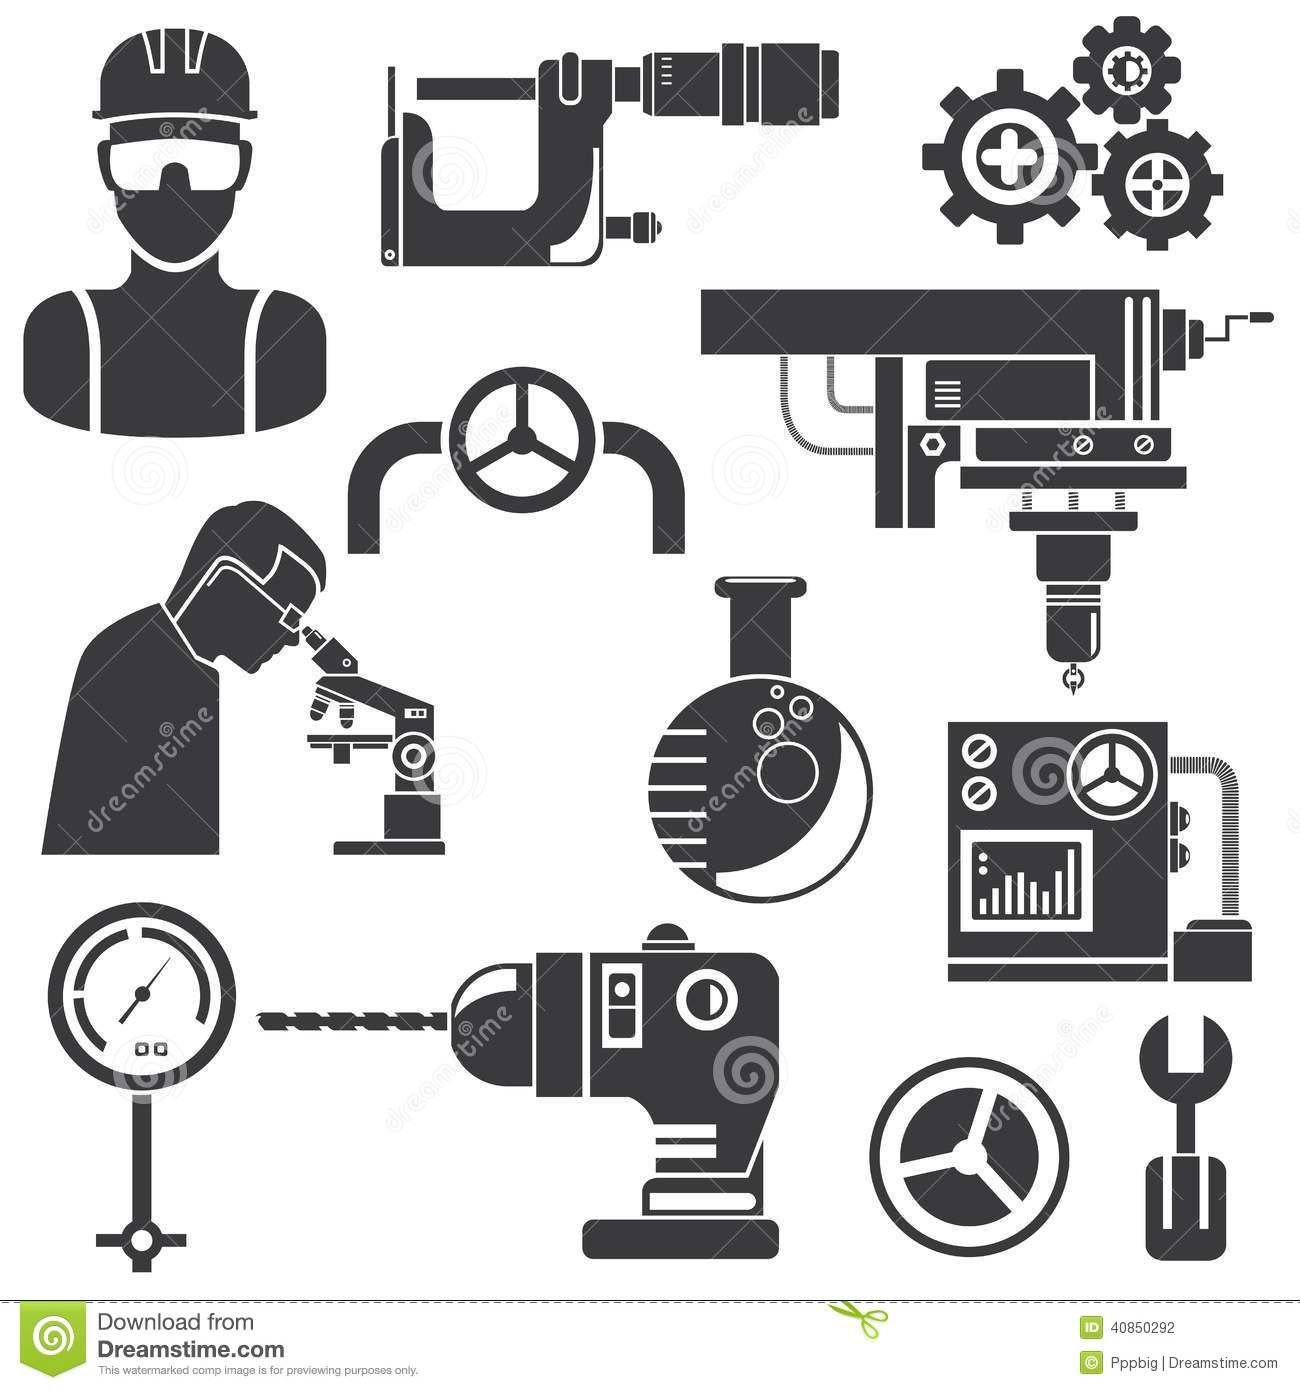 industrial-engineering-tools-icons-black-color-40850292.jpg (1300×1390)